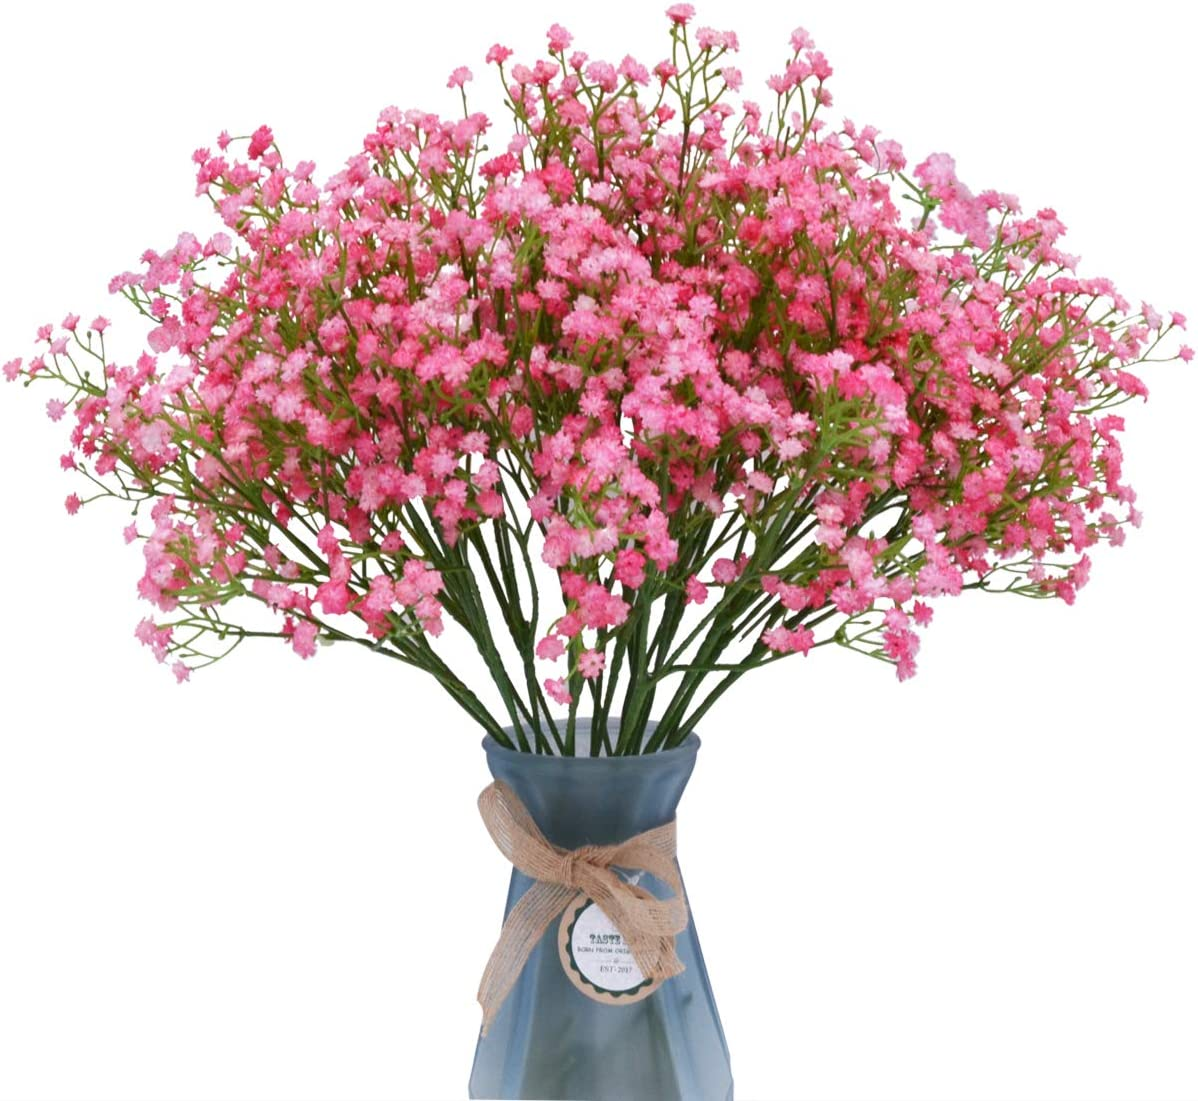 LUYAR 12 PCS Baby Breath, Pink Gypsophila Artificial Flower - Real Touch Fake Flower PU Plants for Wedding Bouquets & DIY Home Decor